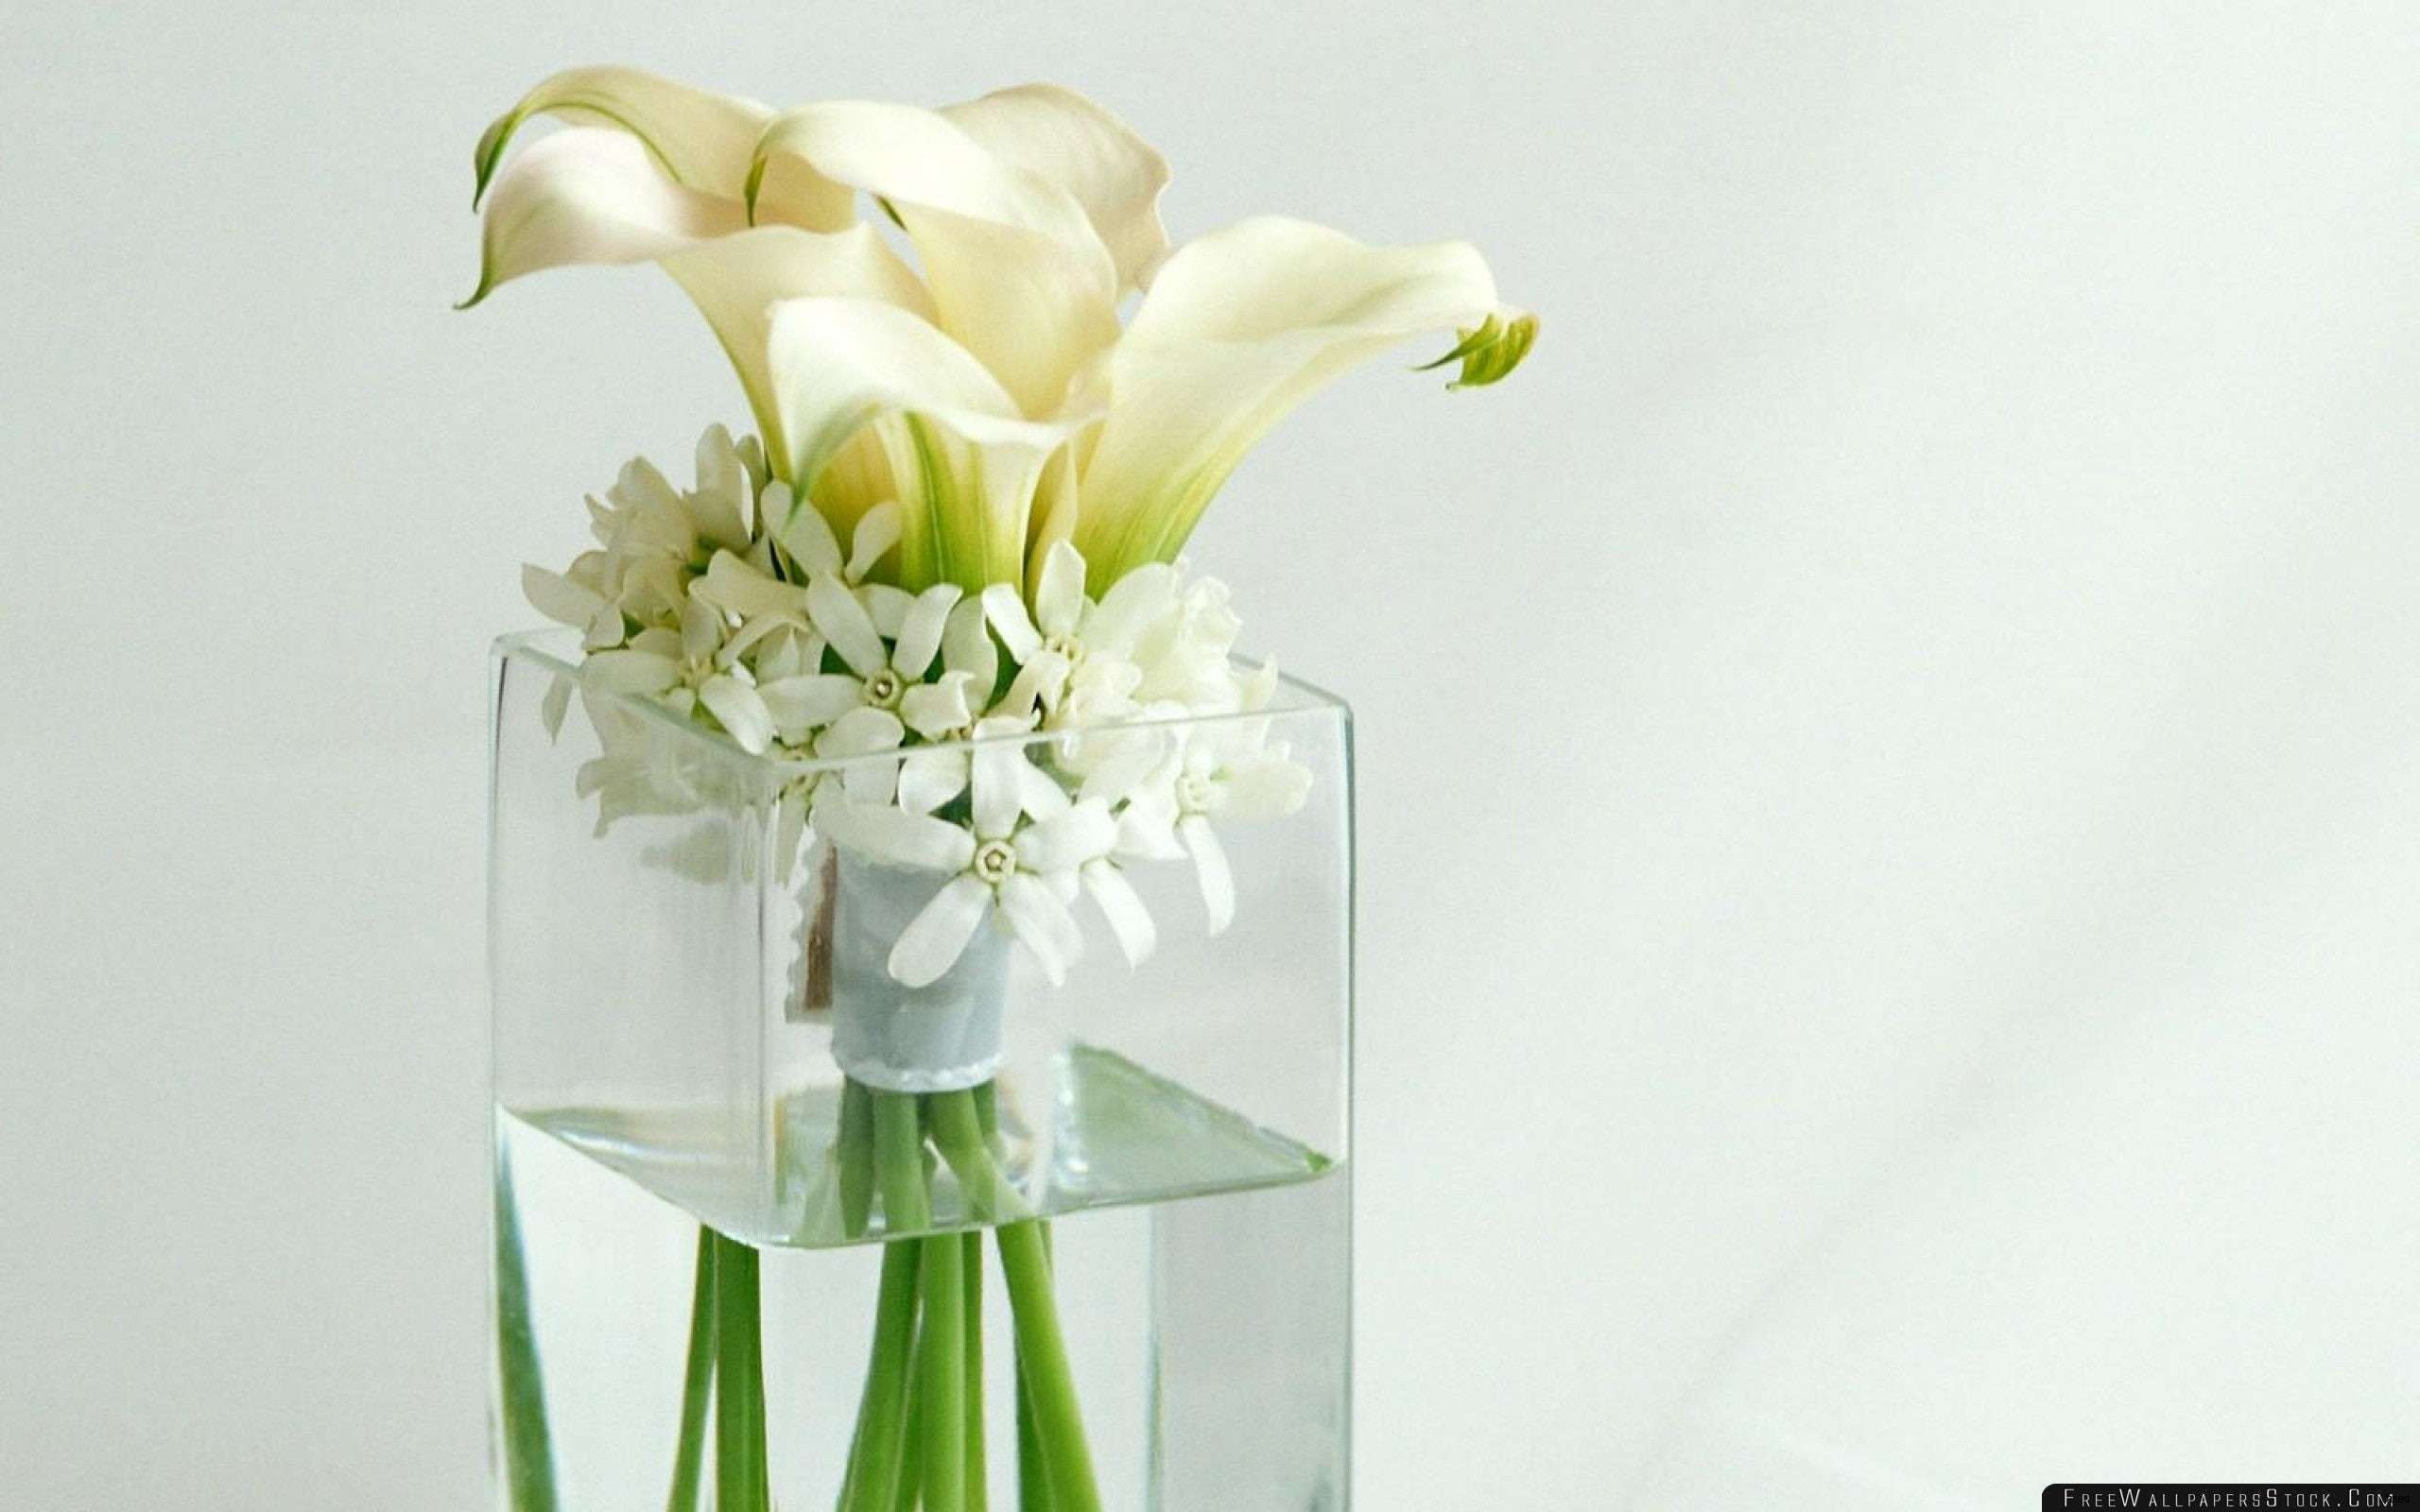 giant martini glass vase of tiny glass vases image tall vase centerpiece ideas vases flowers in pertaining to tiny glass vases image tall vase centerpiece ideas vases flowers in water 0d artificial of tiny